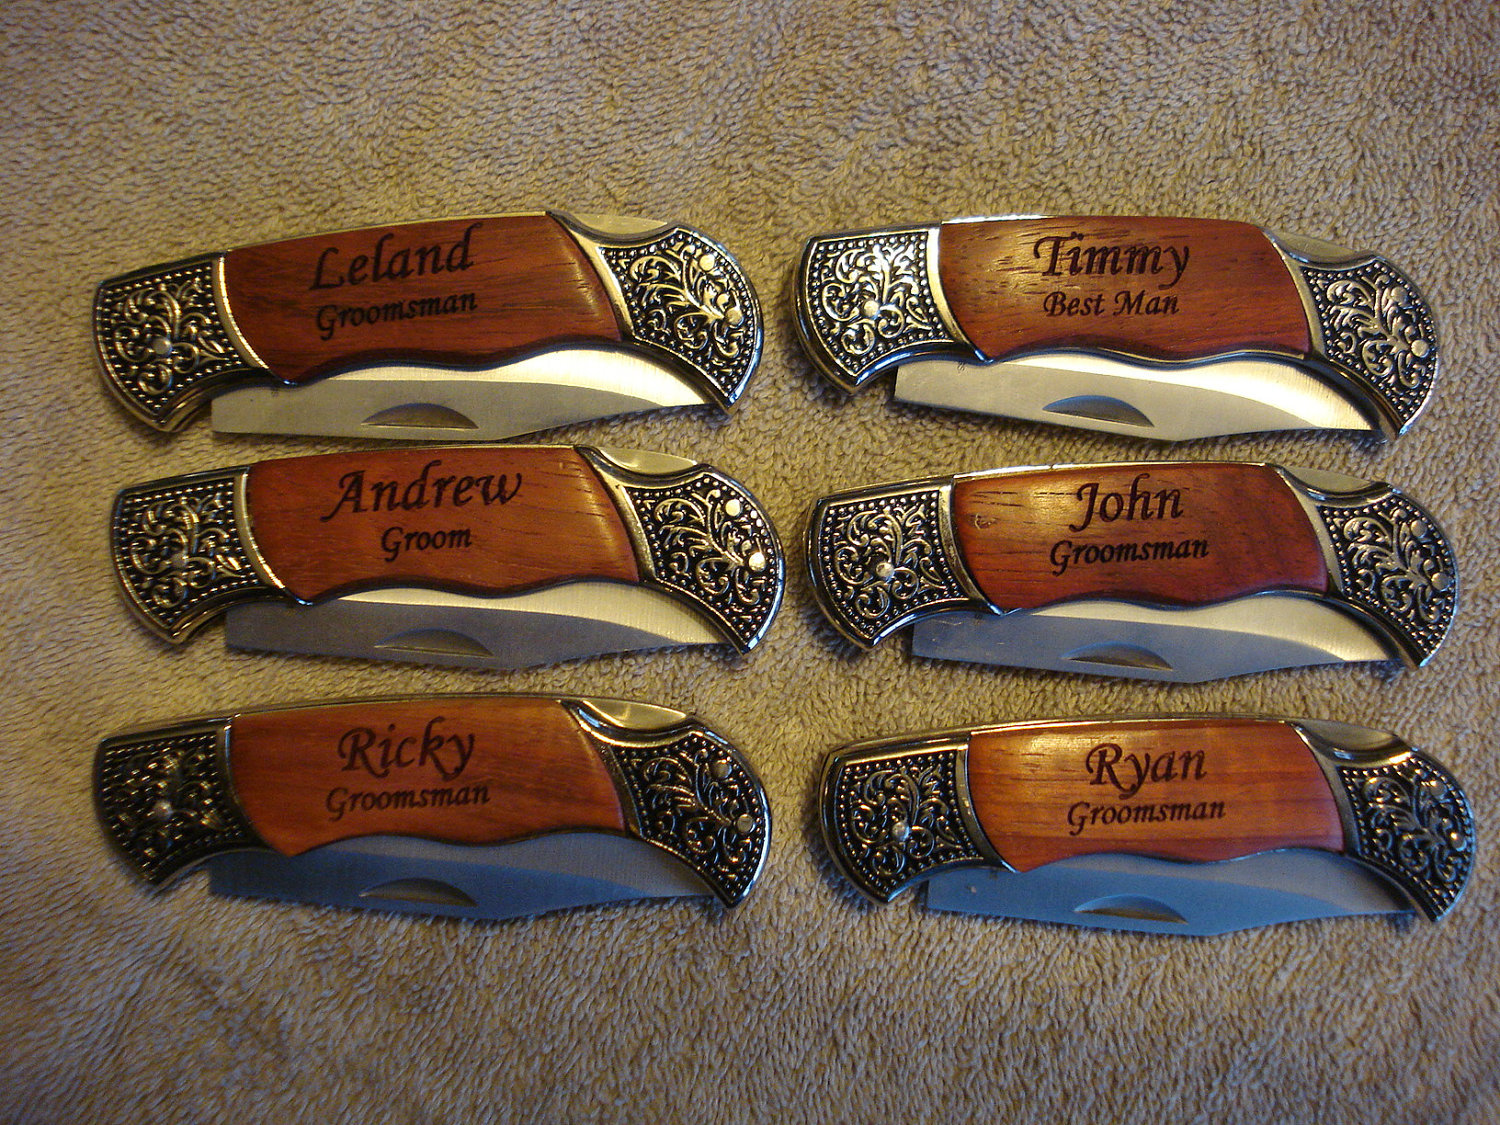 ... Pocket Knives - Gifts for Groomsmen, Wedding Party - Party Favors